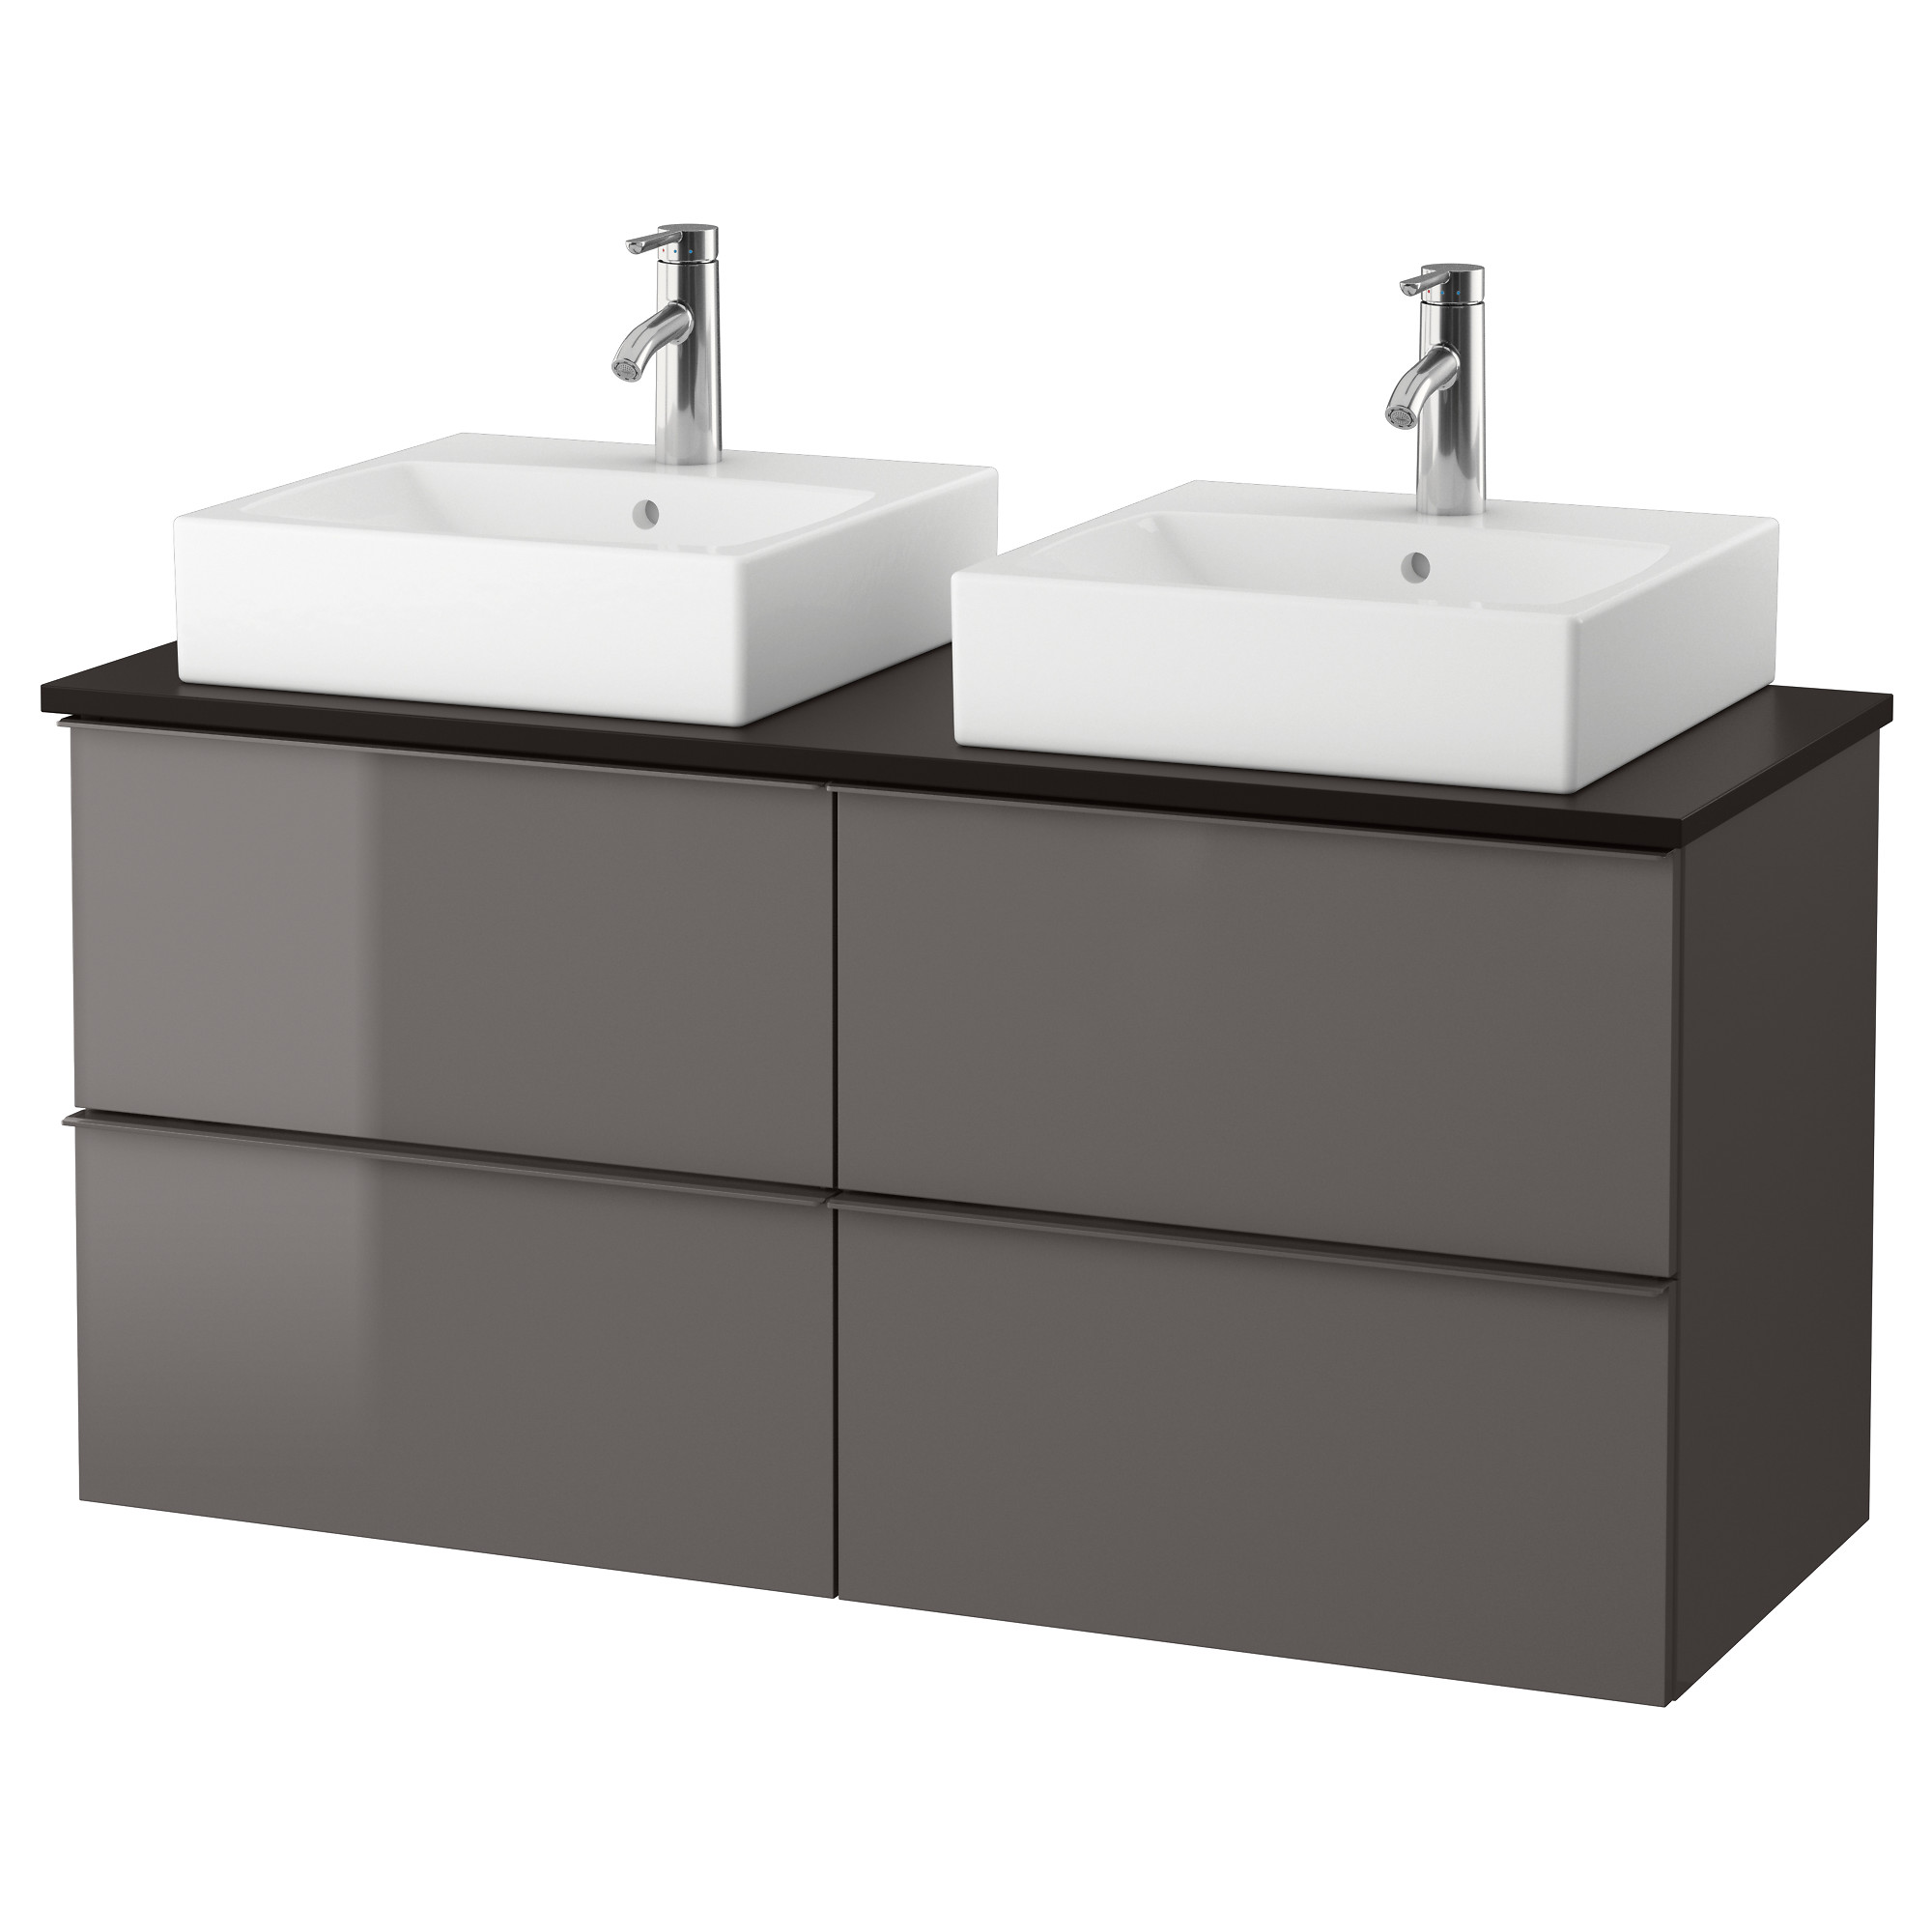 Sink Furniture Design Roomraleigh kitchen cabinets Nice